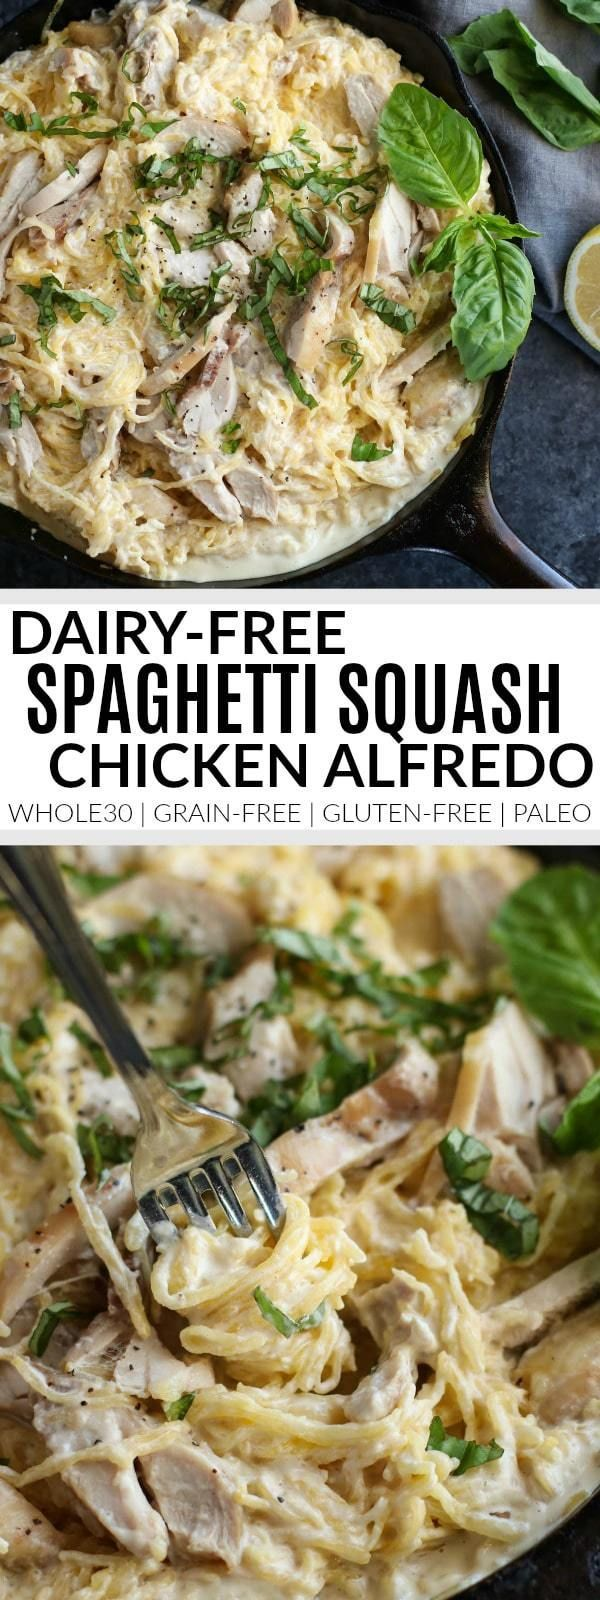 Dairy free spaghetti squash chicken alfredo receta comidas sanas dairy free spaghetti squash chicken alfredo receta comidas sanas comida y paleo forumfinder Image collections